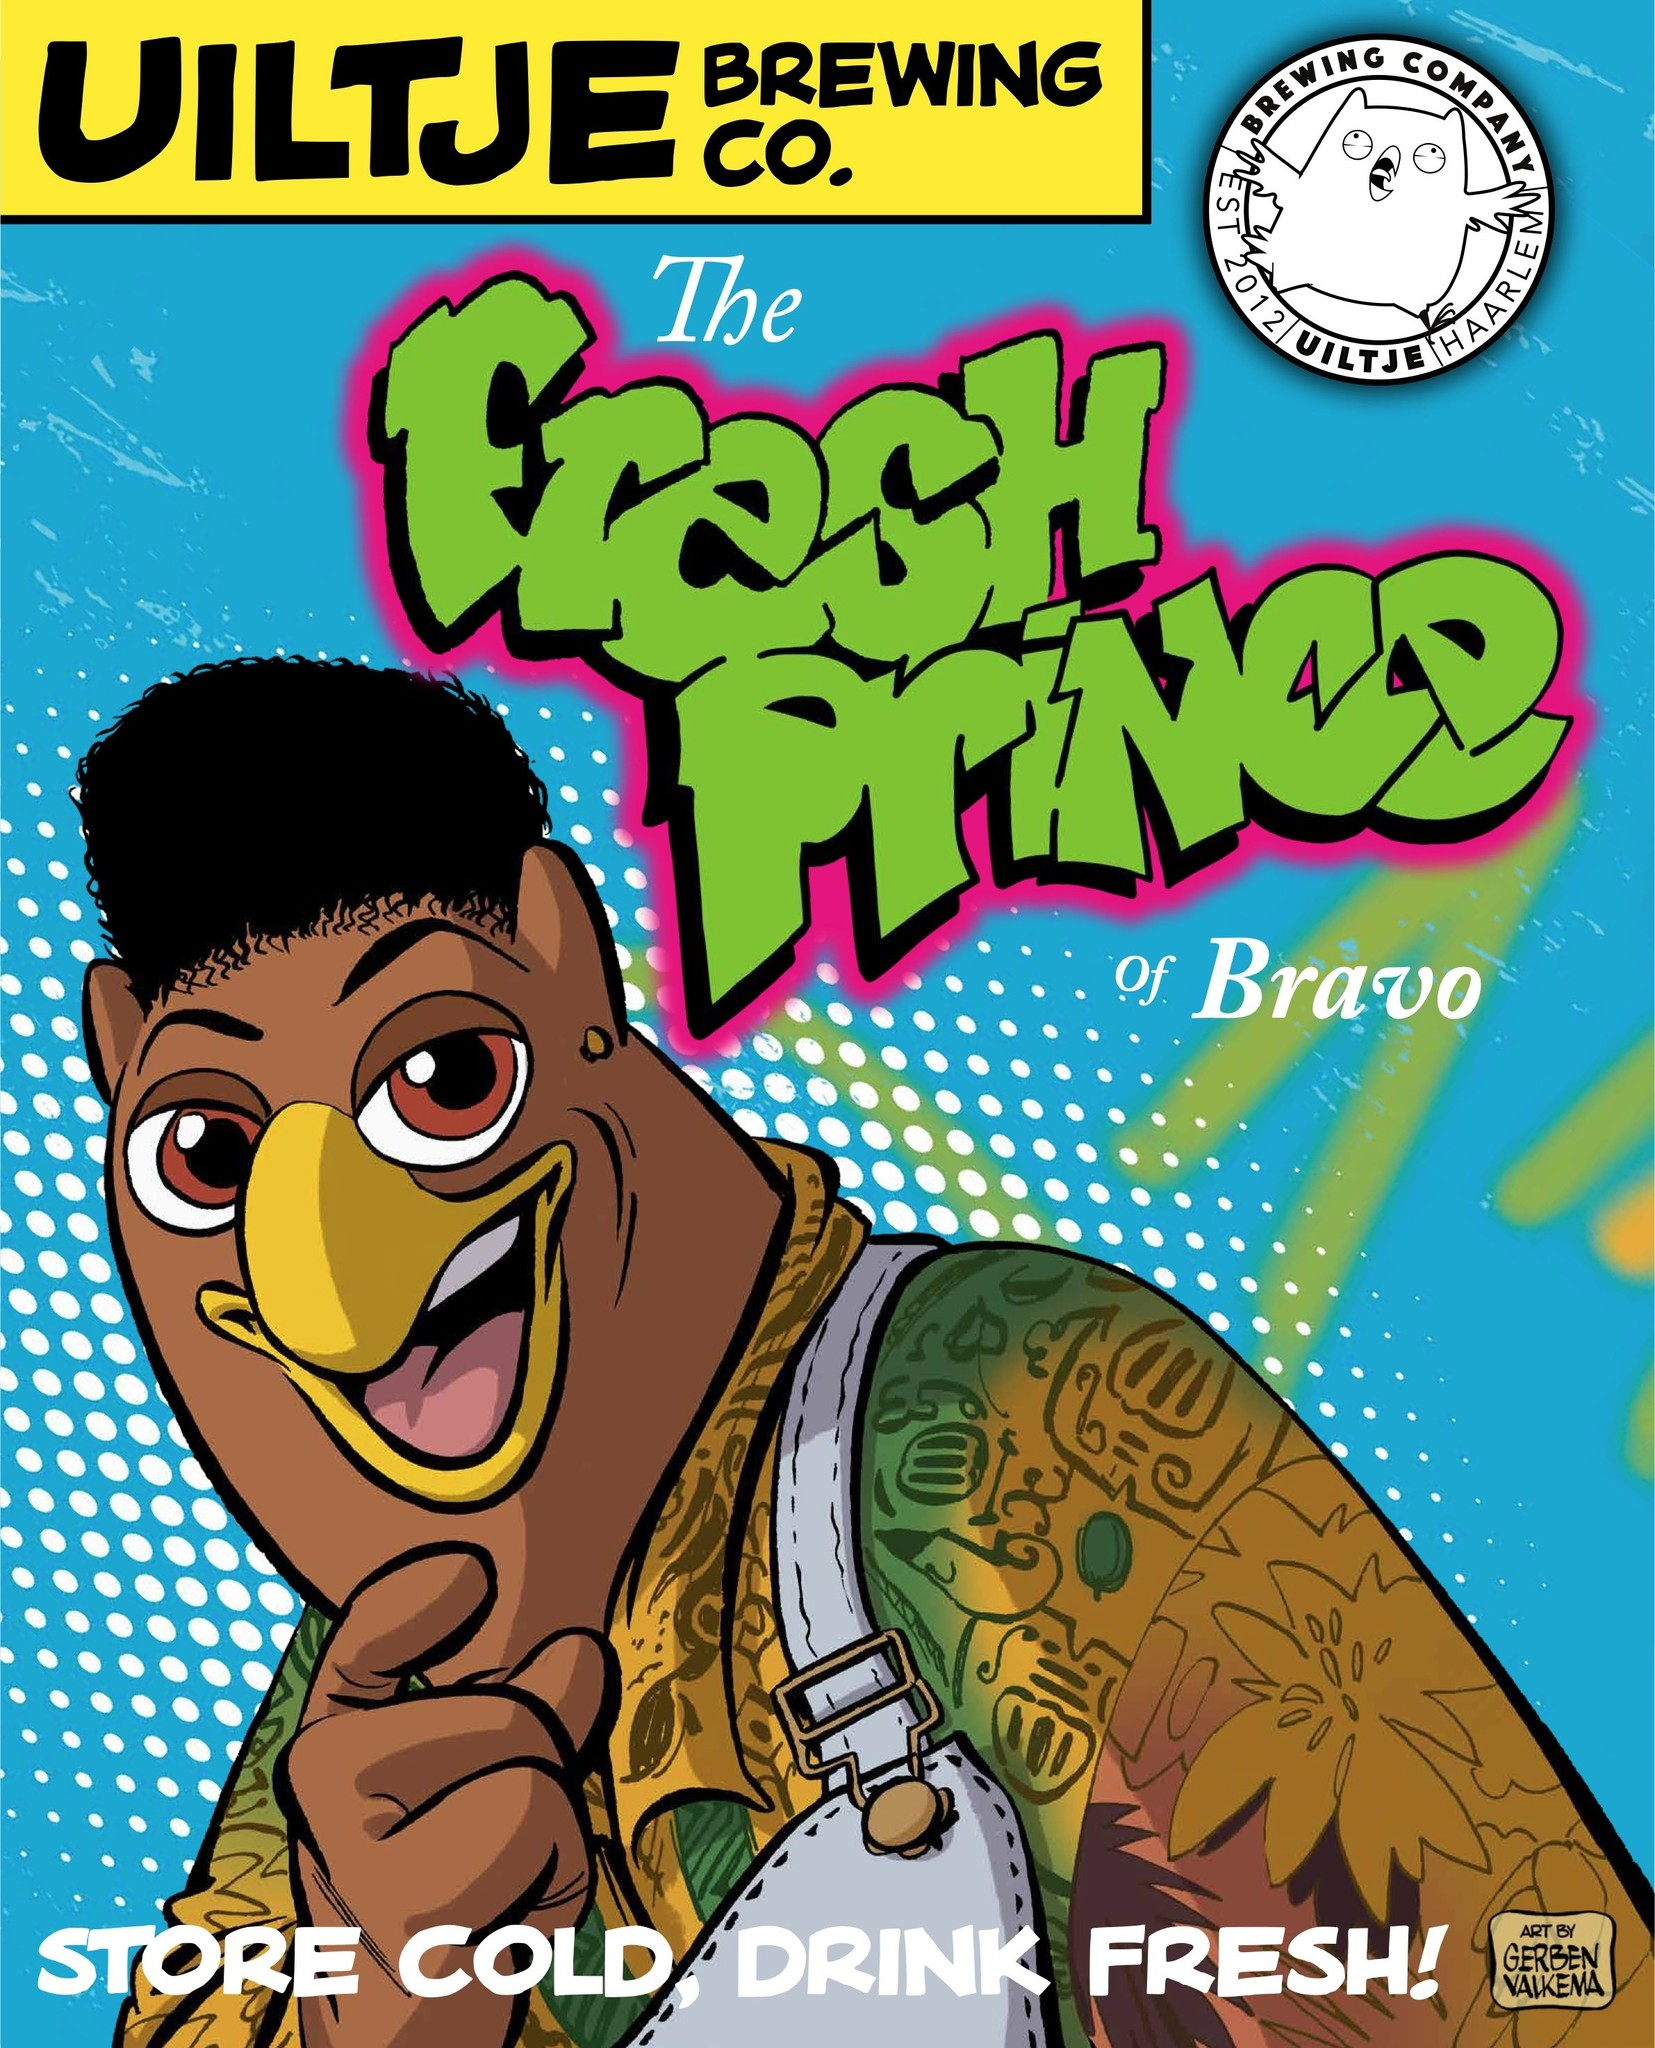 Uiltje- The Fresh Prince of Bravo- Poster